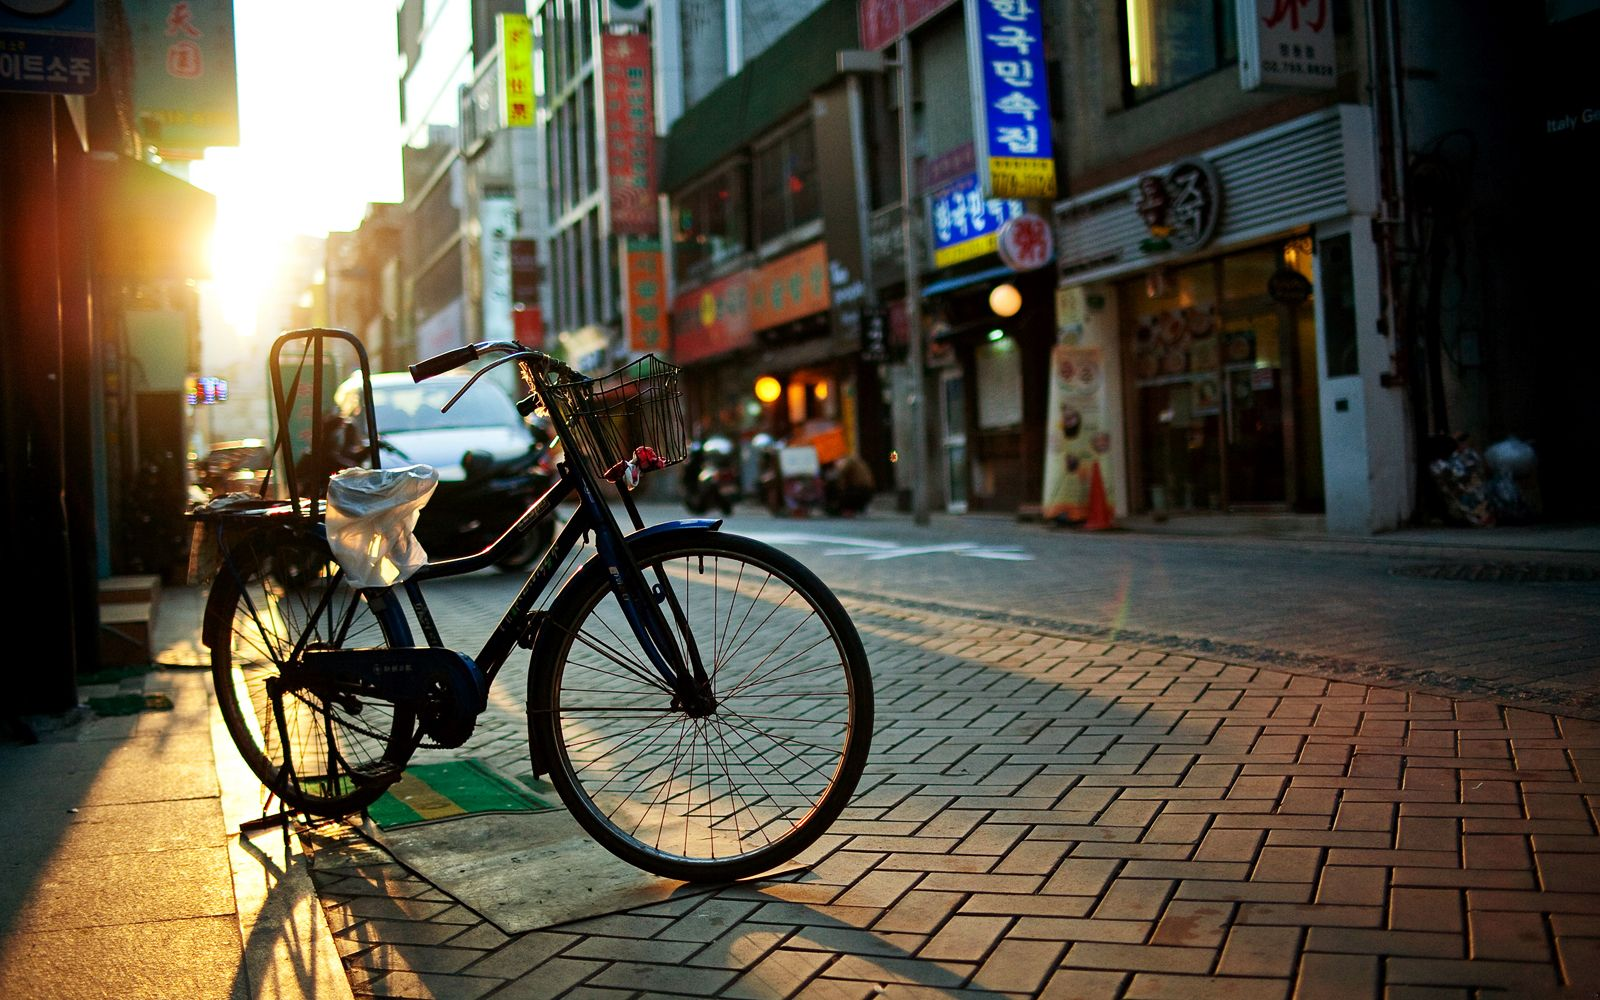 Vintage Photography Vintage Bicycle Photography Hd Wallpapers Download Free Wallpapers In Tempat